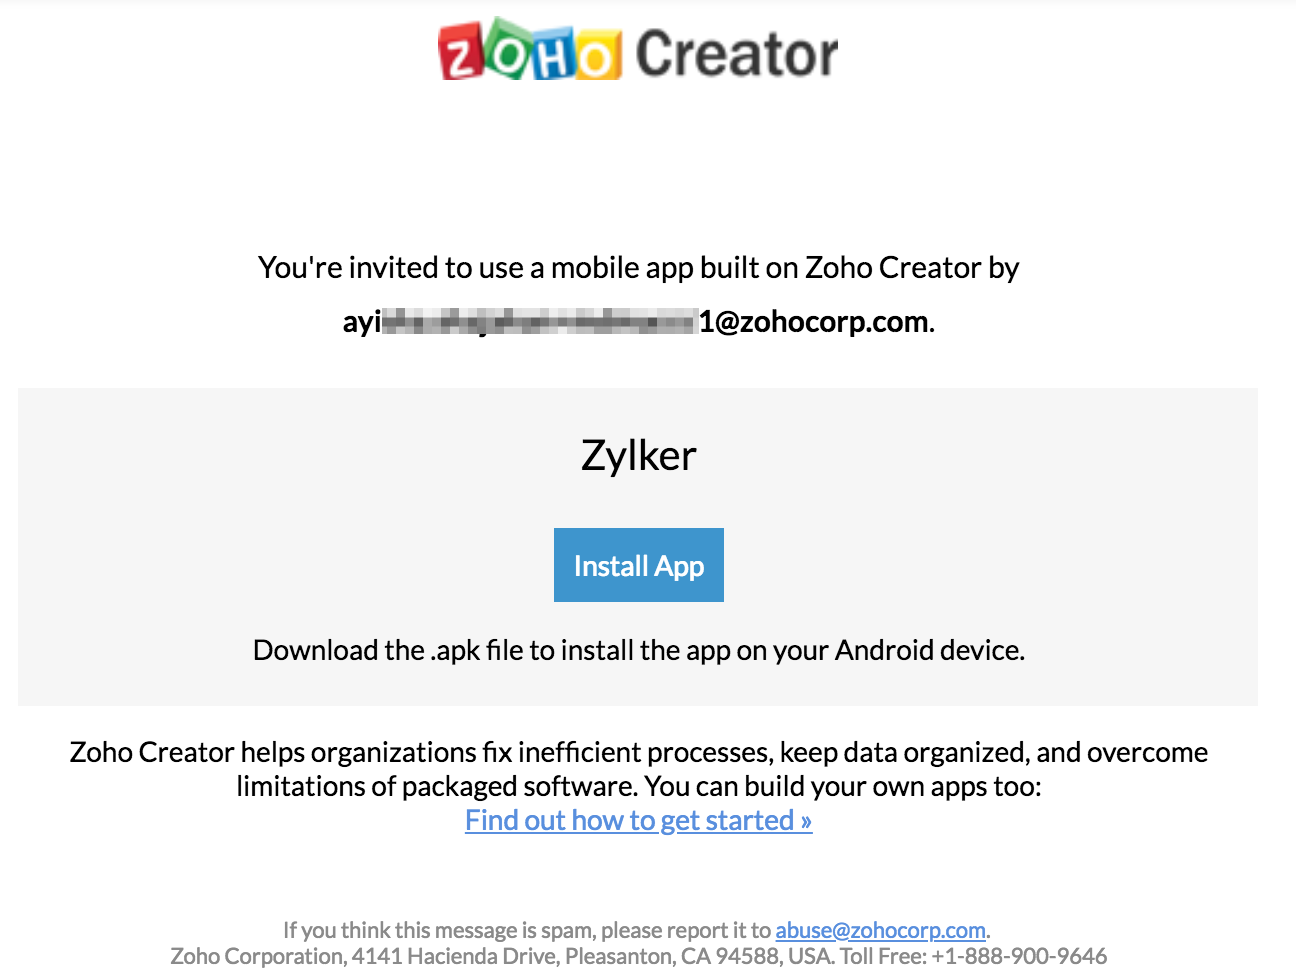 Code sign Android app for users | Zoho Creator Help